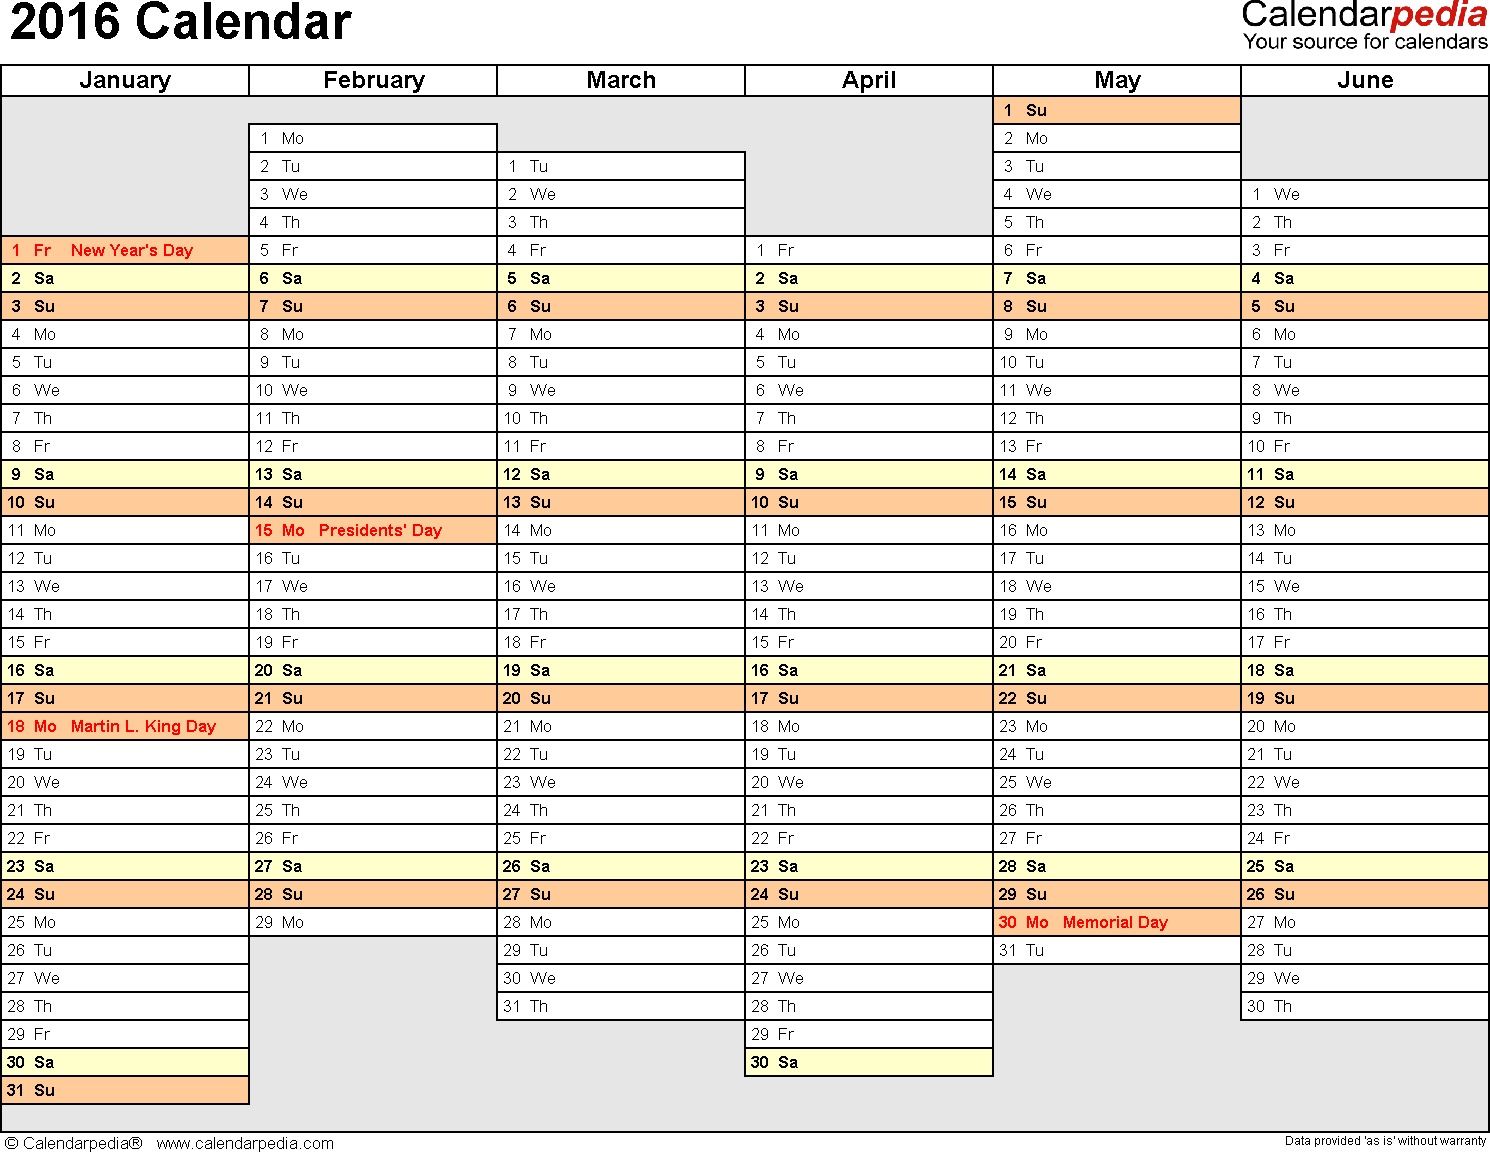 Template 5: 2016 Calendar for Excel, months horizontally, 2 pages, days of the week in line/linear, landscape orientation